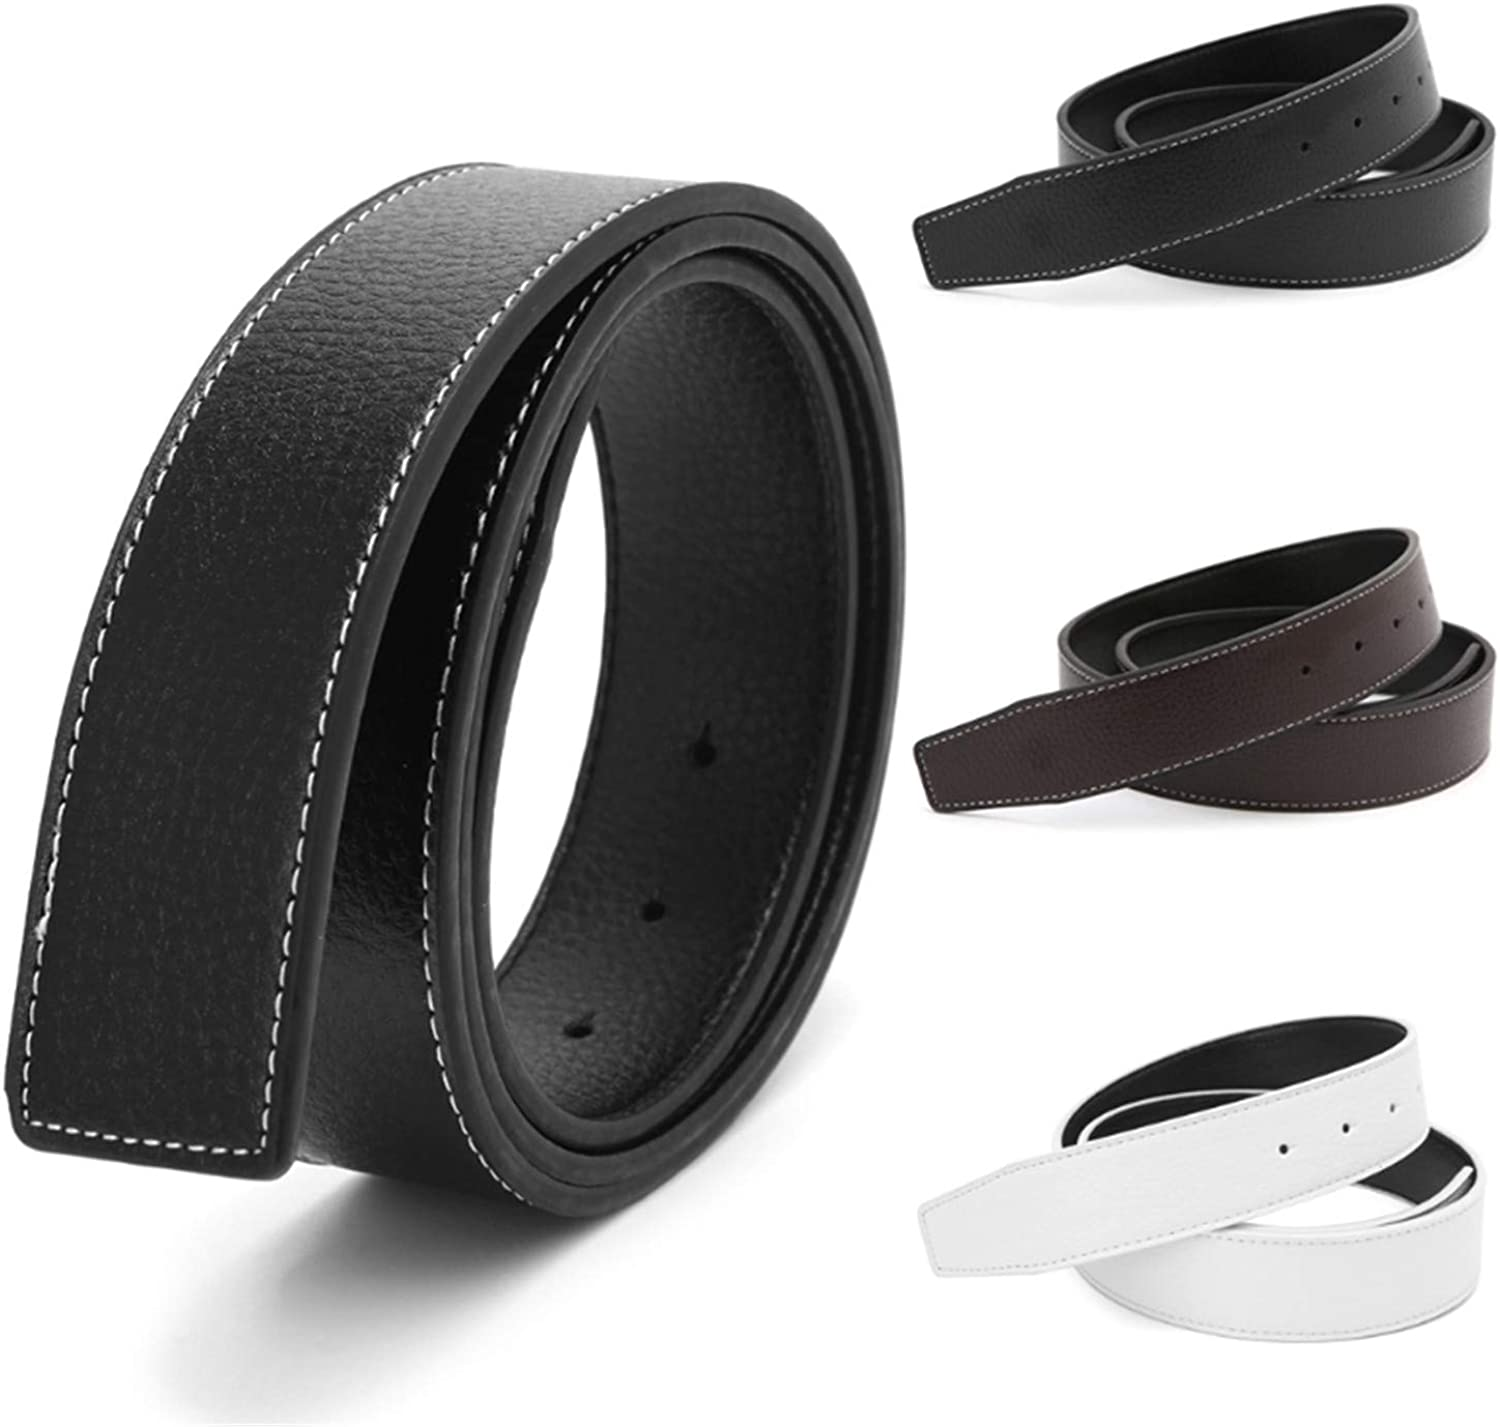 Nerefy Belts For Men Pin Buckle Male Strap Leather Waistband No Buckle